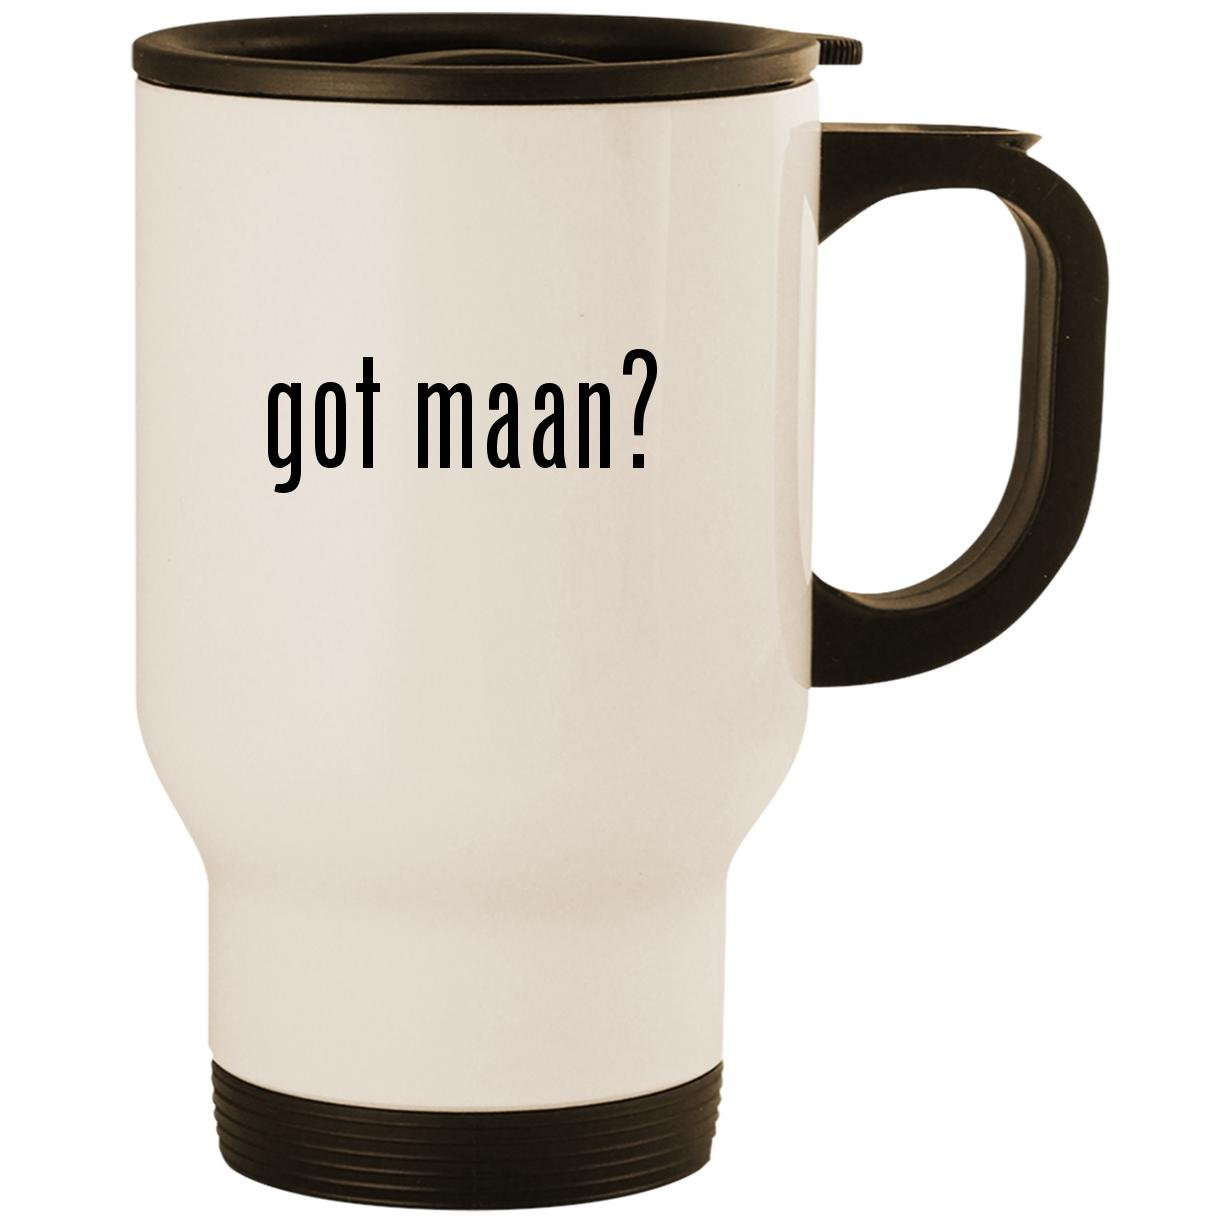 got maan? - Stainless Steel 14oz Road Ready Travel Mug, White by Molandra Products